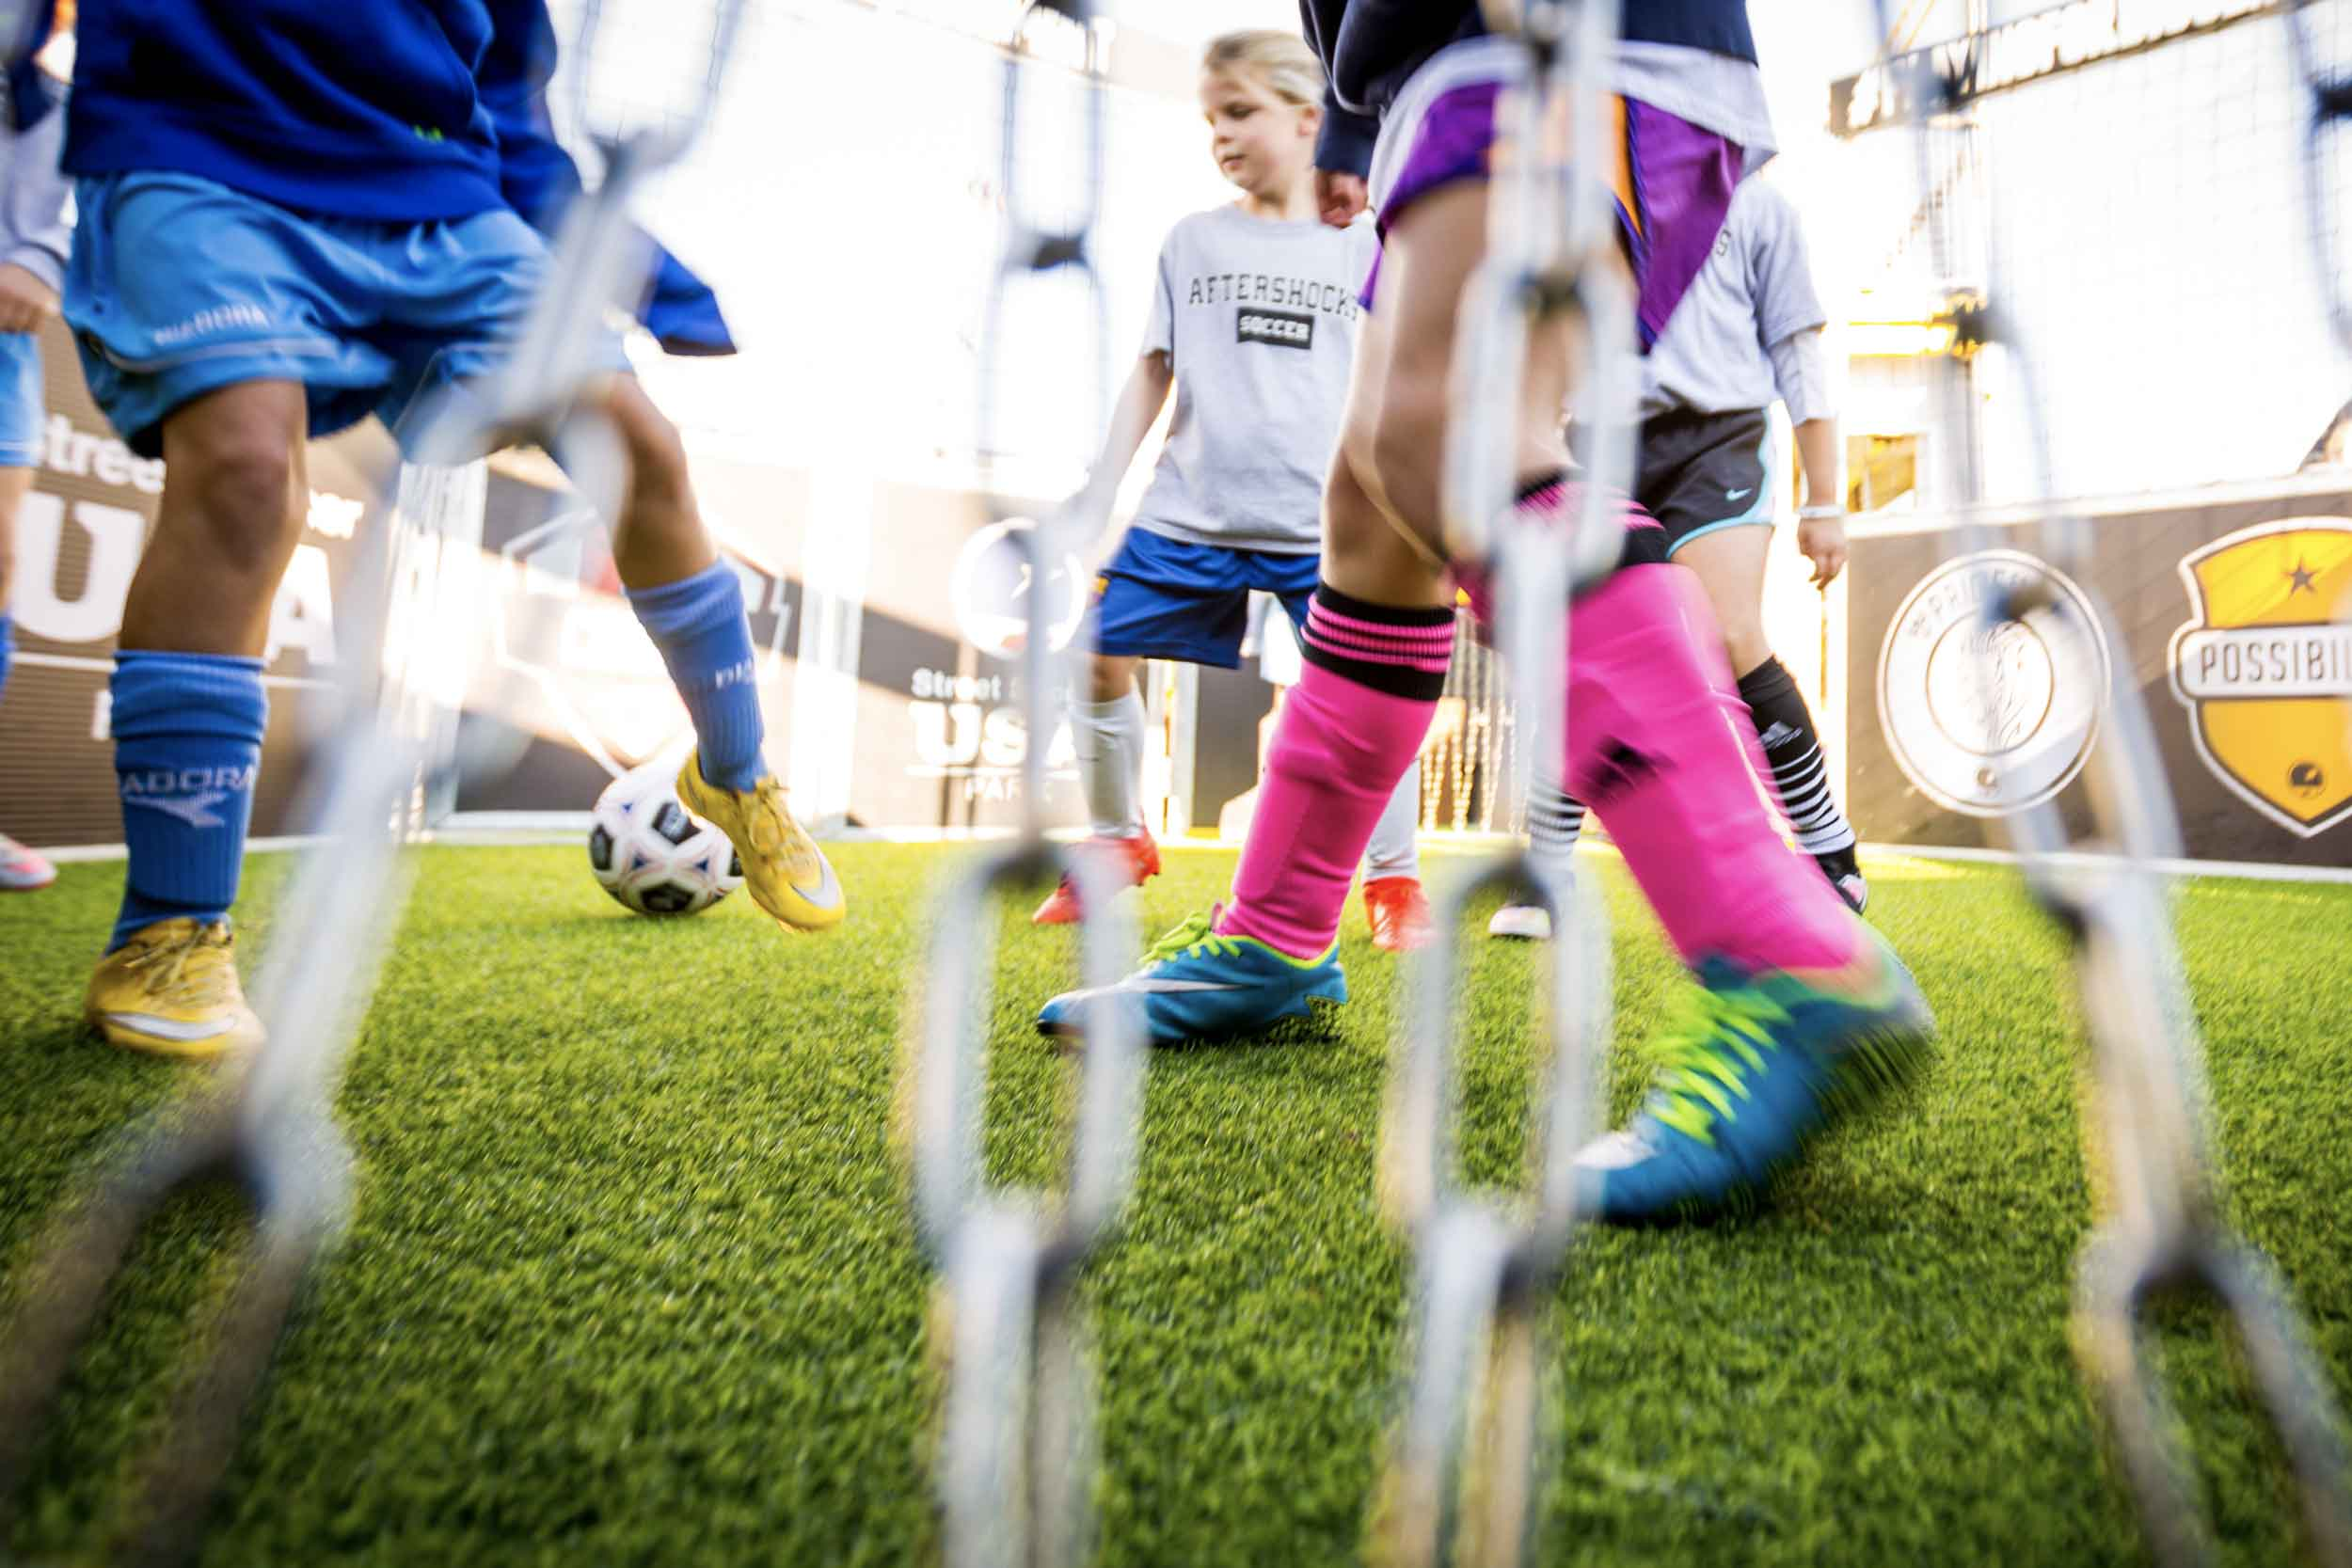 Kids playing small-sided soccer with chain goal at Urban Soccer Park.